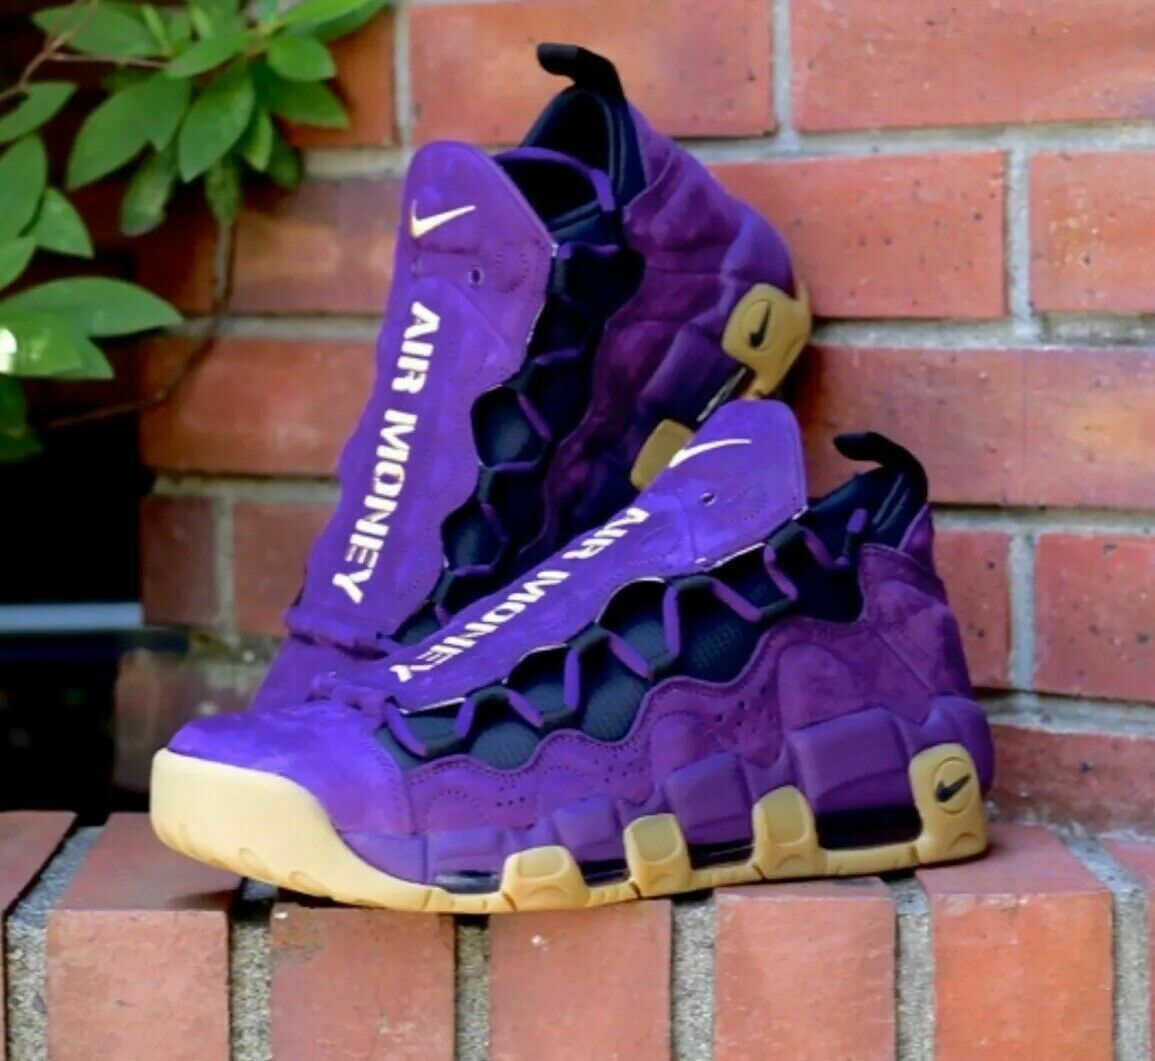 Nike Air More Money AR5401-500 ''NYC PACK LEOPART''Night Purple gold Size 9.5